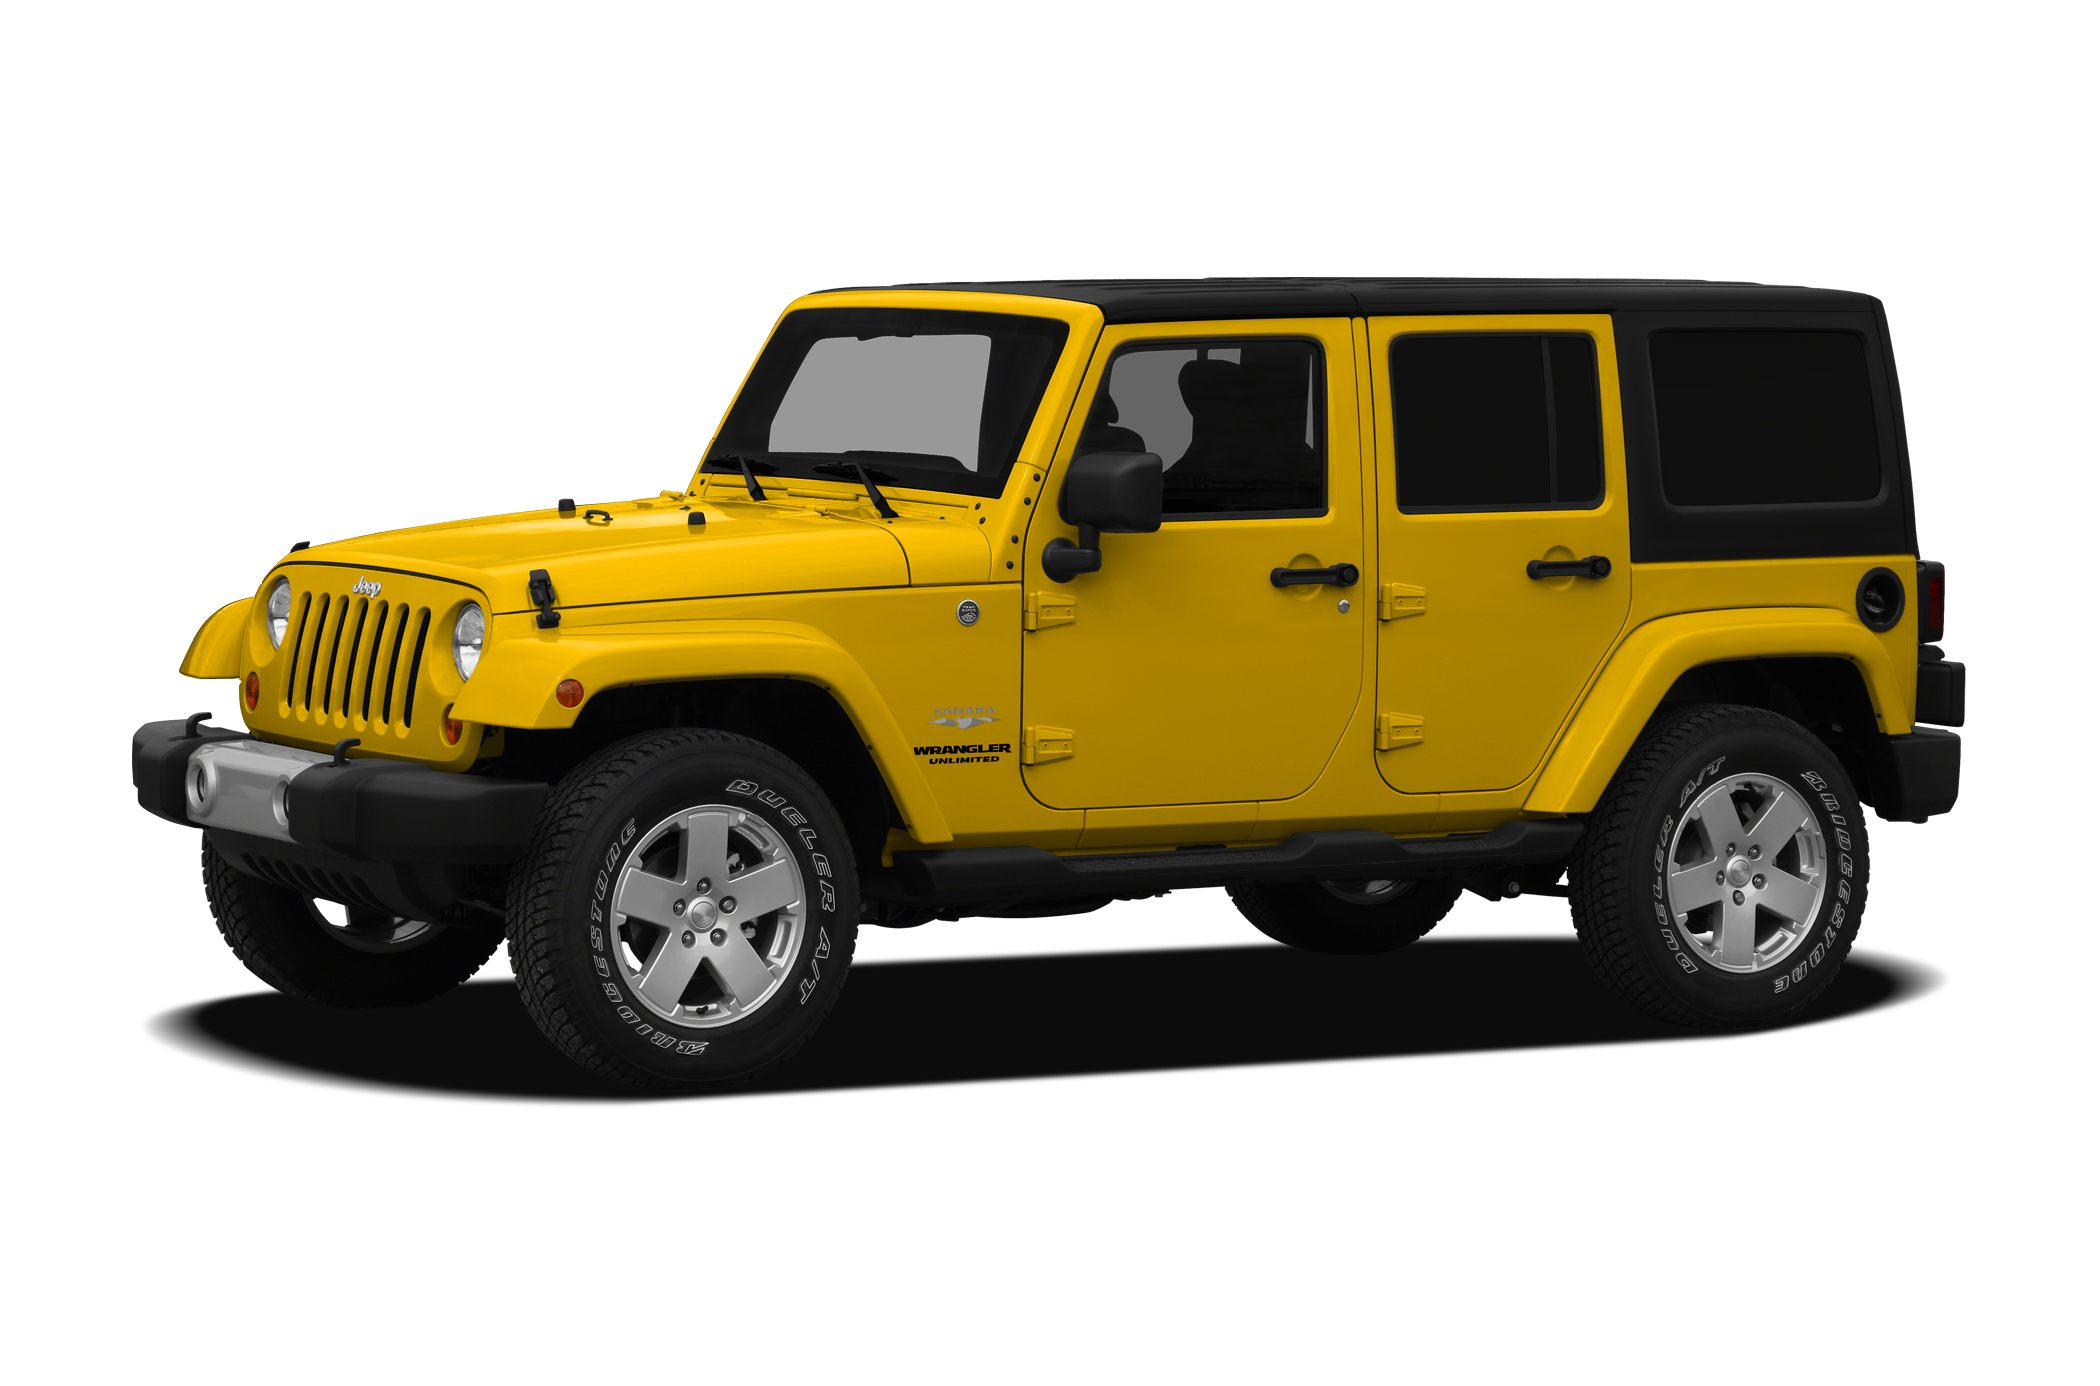 2011 Jeep Wrangler Unlimited Sahara Wrangler Unlimited Sahara and Black wCloth Bucket Seats Move